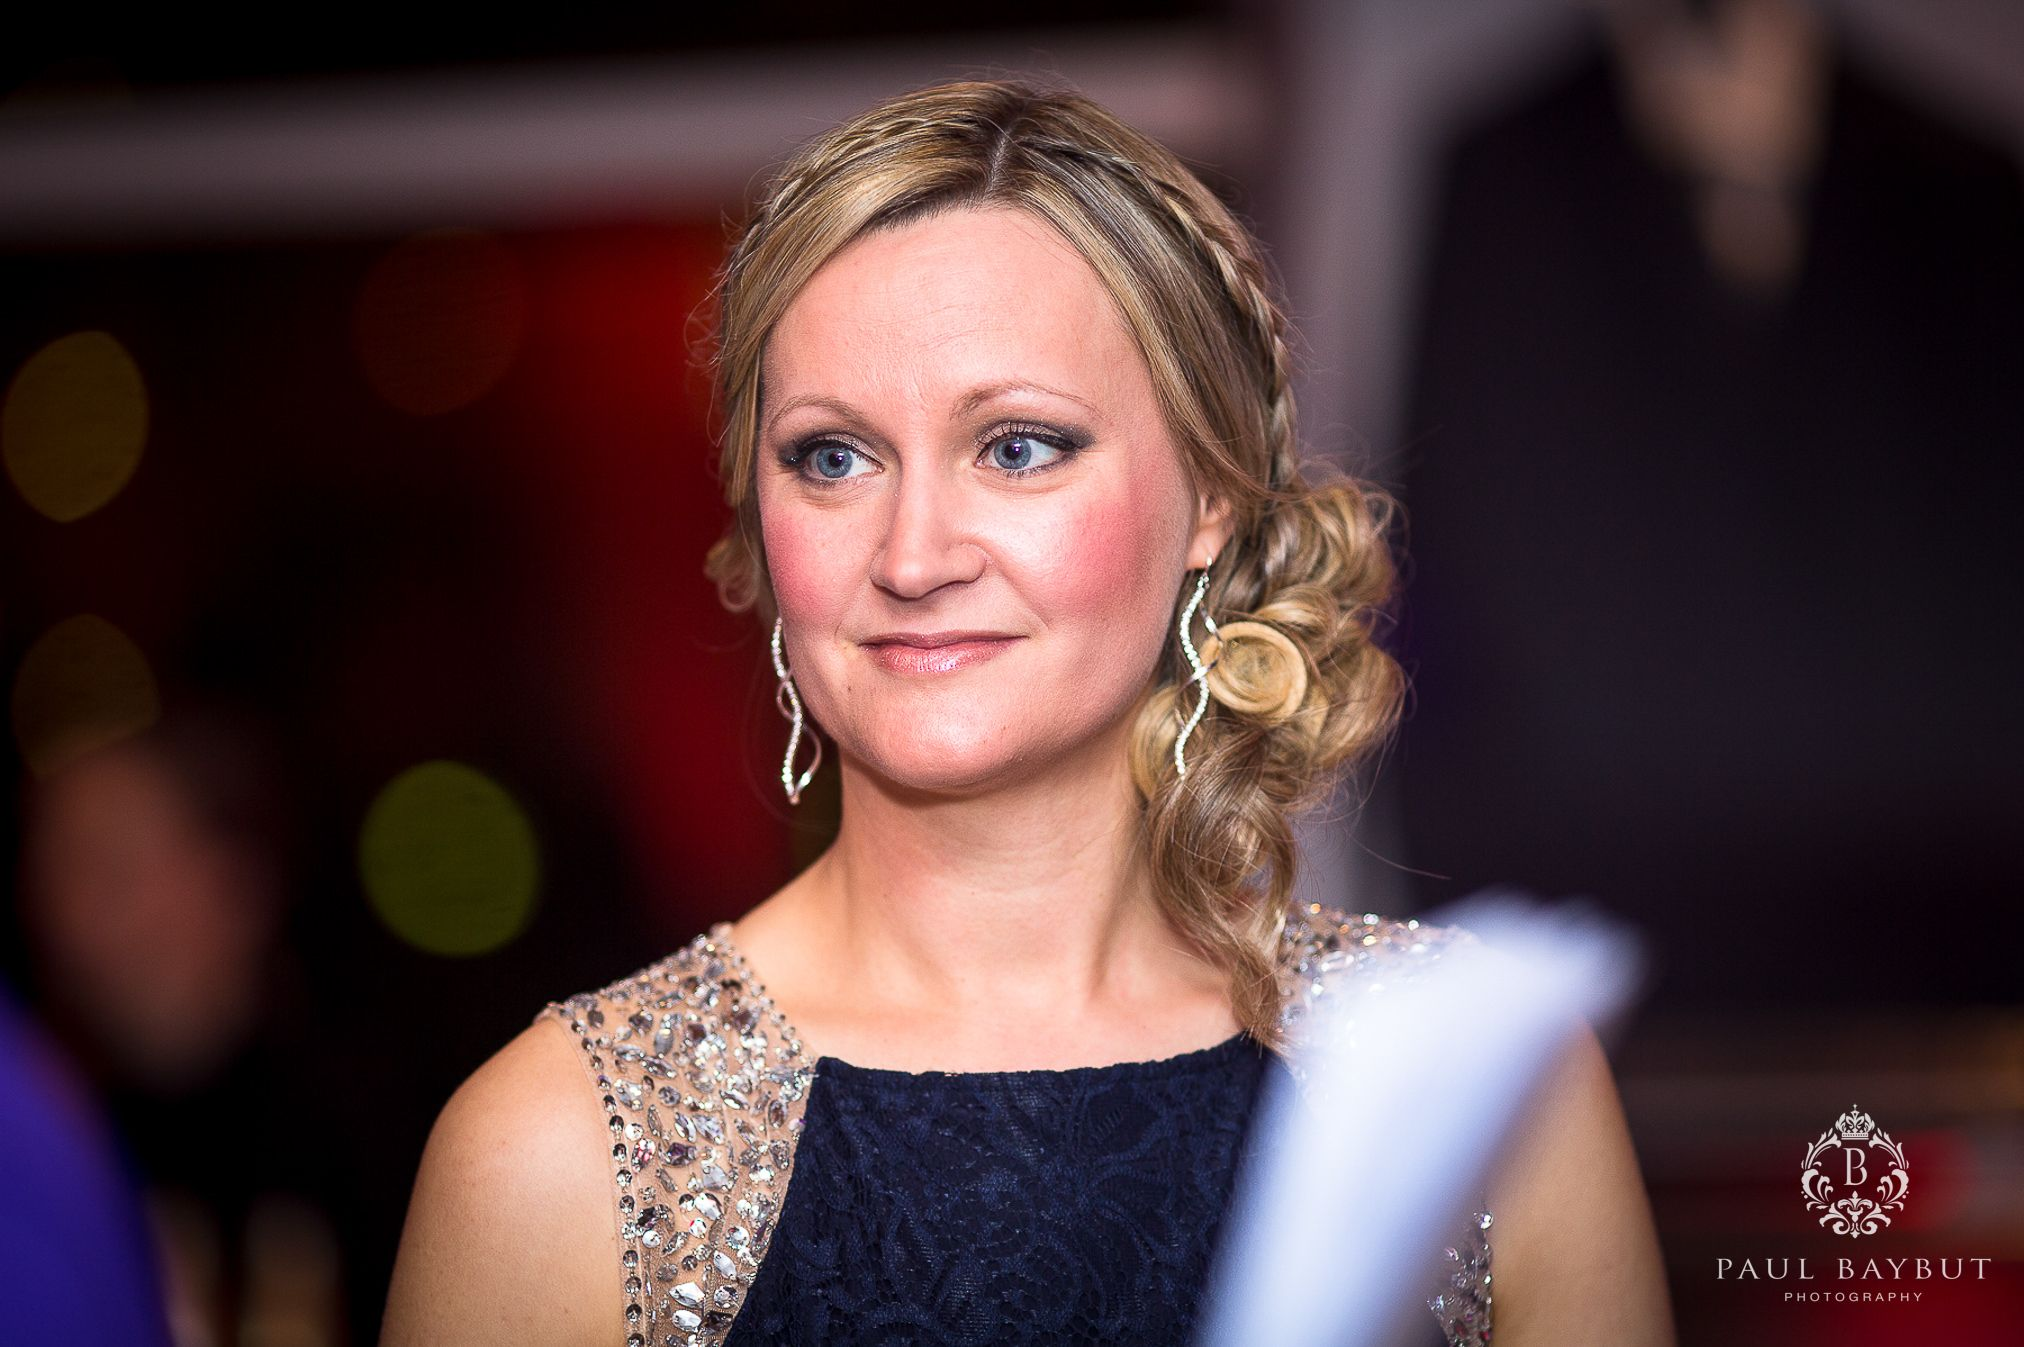 Young glamourous female guest at a fundraising charity ball event in Manchester